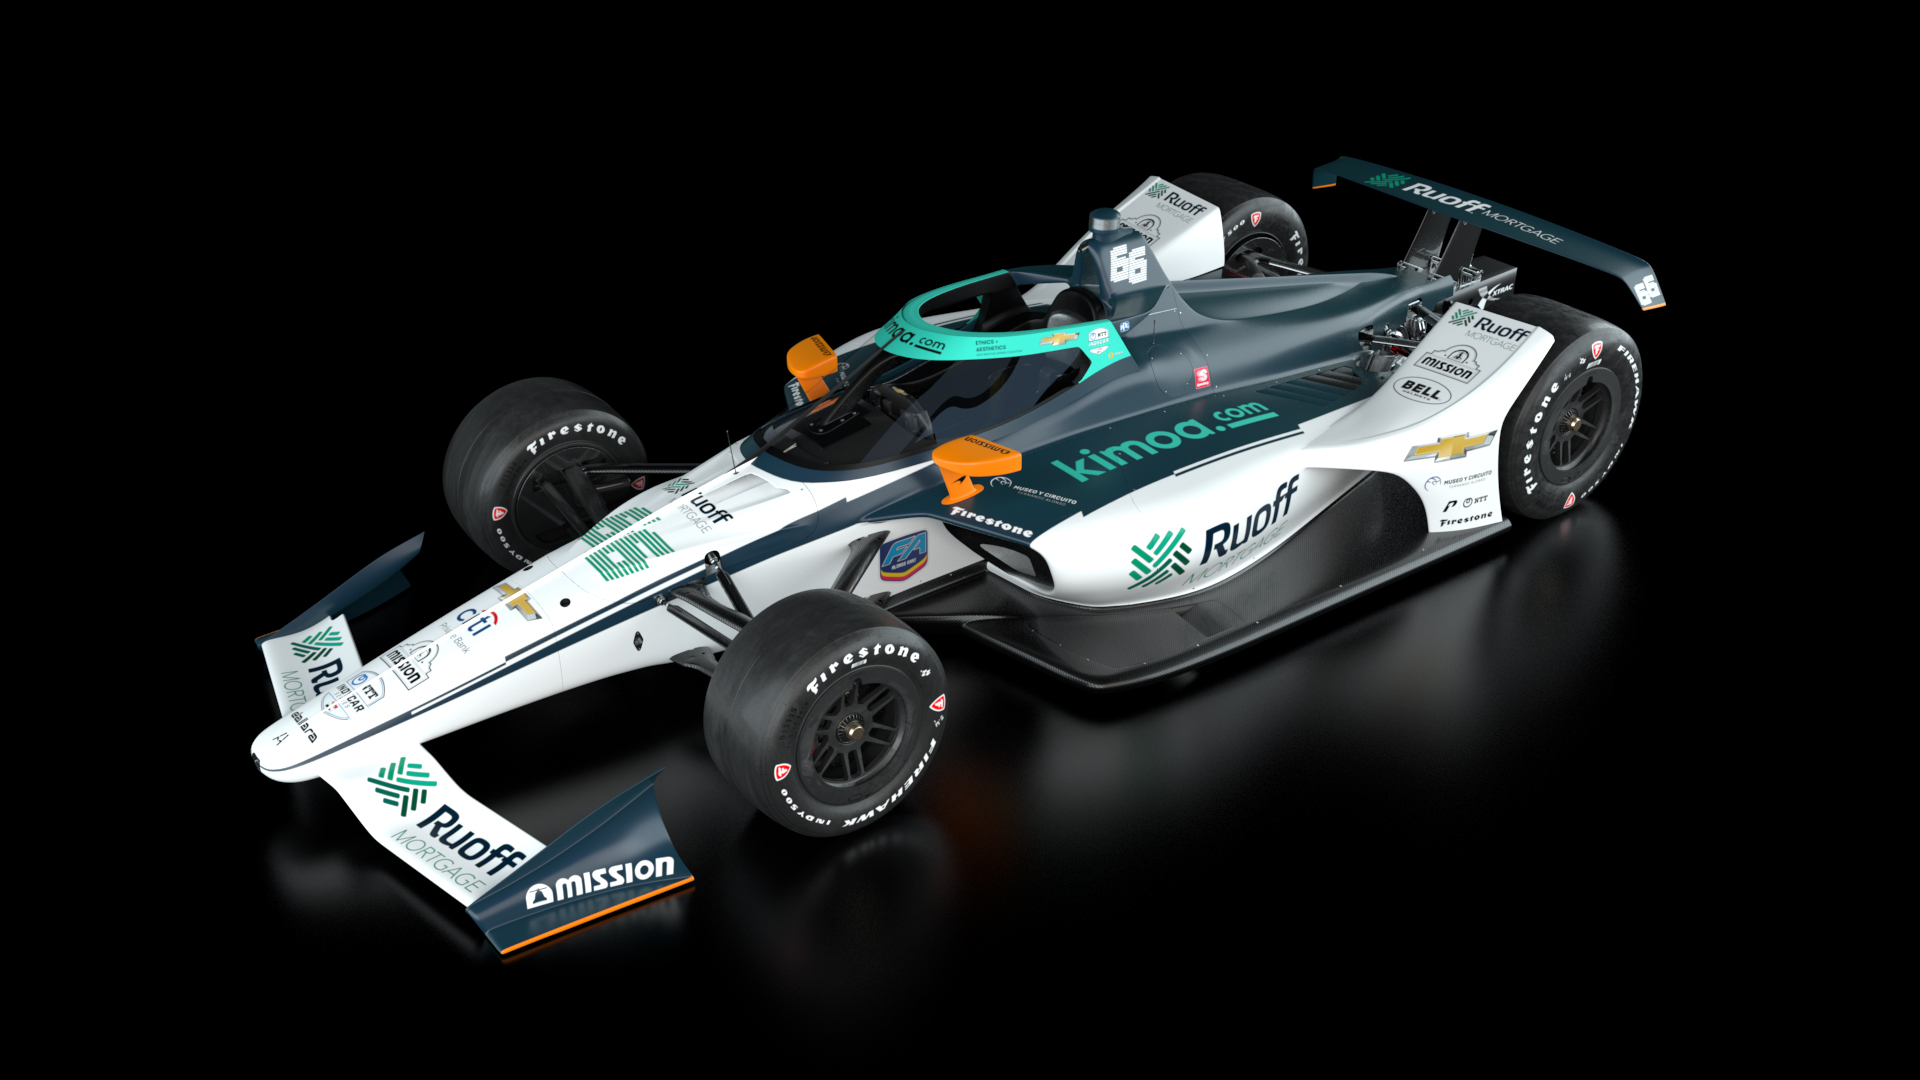 Fernando Alonso Indianapolis 500 livery 2020